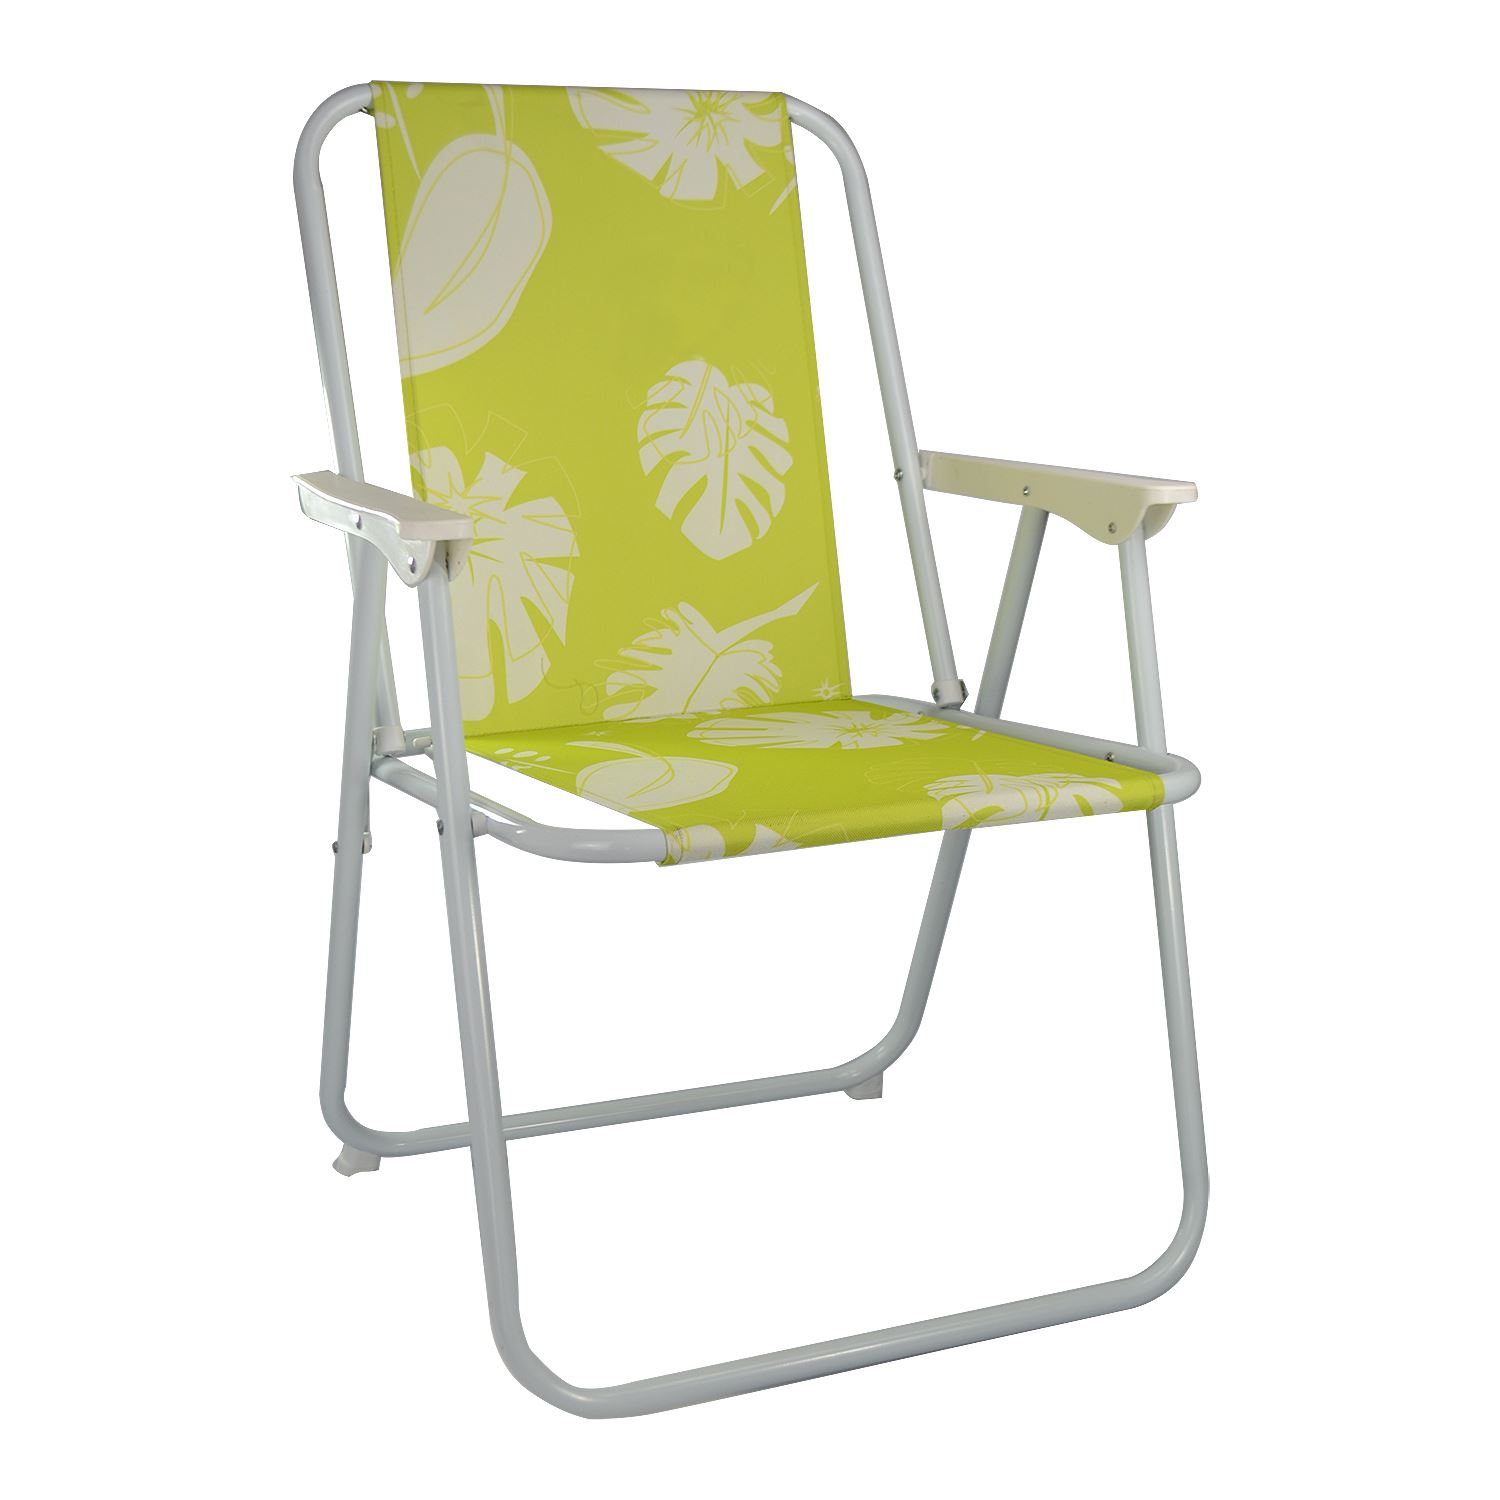 c spring patio chairs hanging chair the sims 4 folding garden deck picnic camping